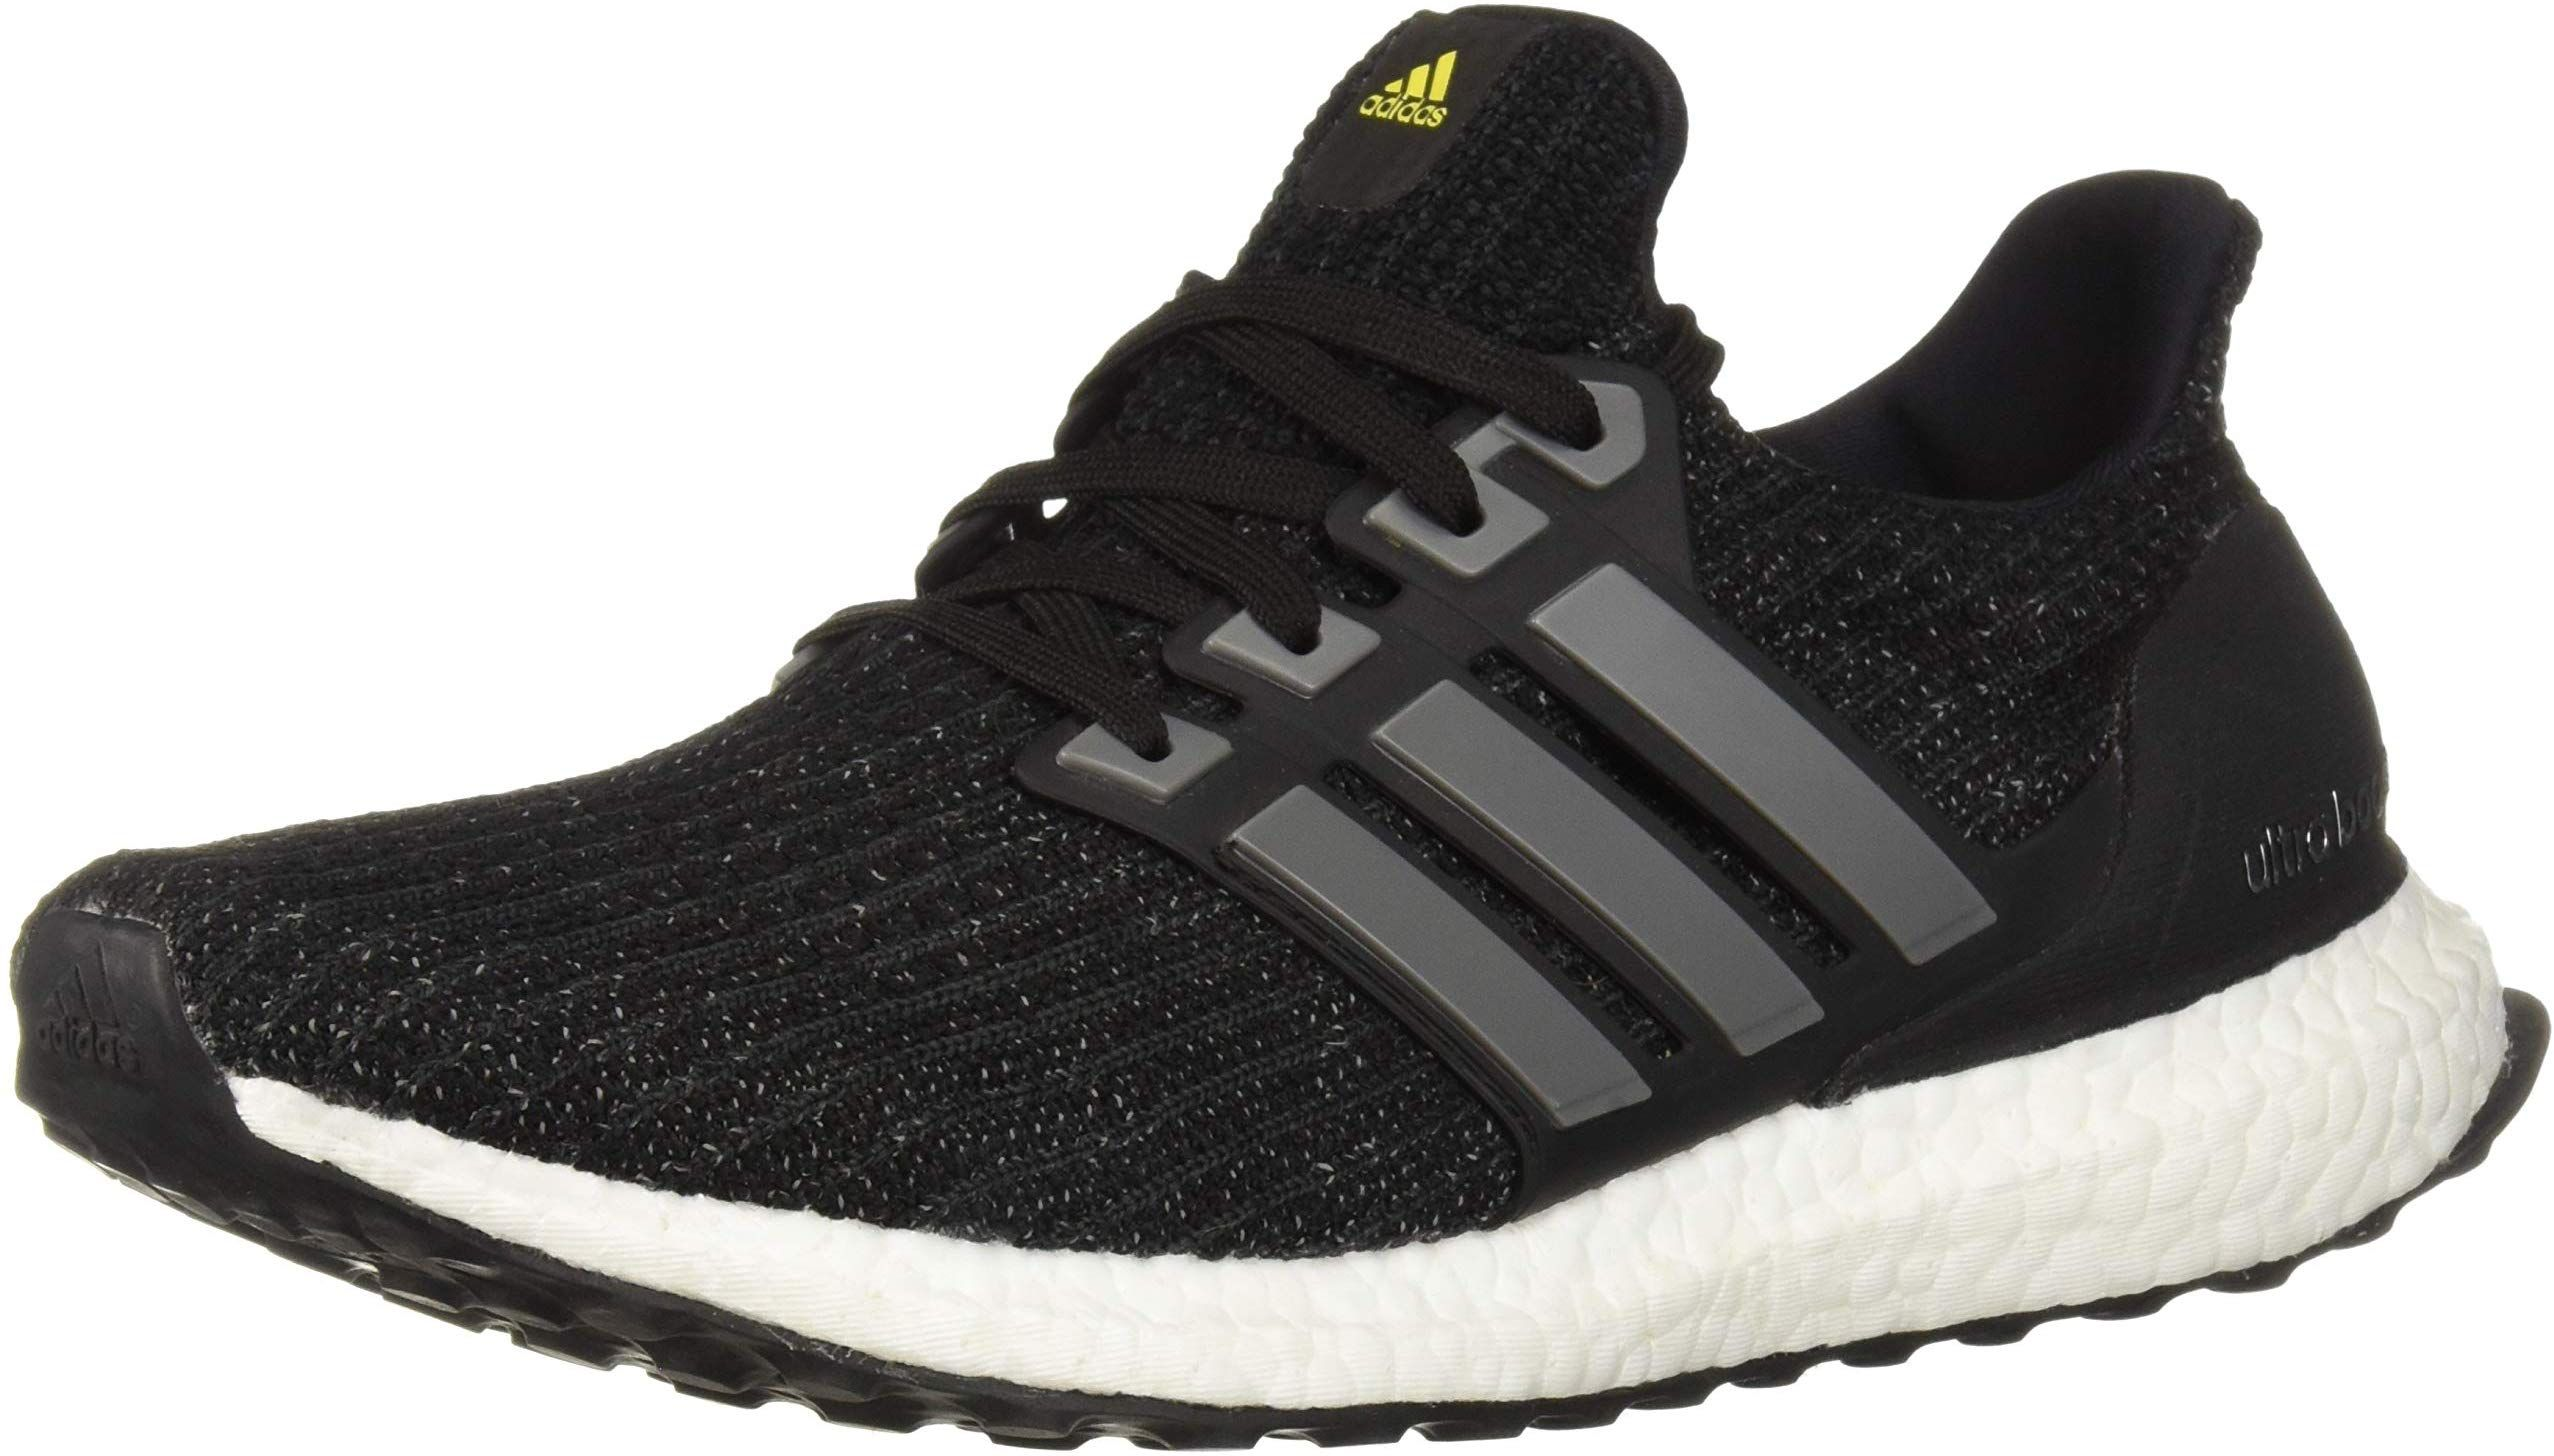 e226793ecc17 adidas Ultra Boost Ltd 5th Anniversary  Amazon  Fashion  Adidas  Yeezy   UltraBOOST  Shoes  Trending DesignerShoes  SportsShoes  Activewear   Sneakers ...